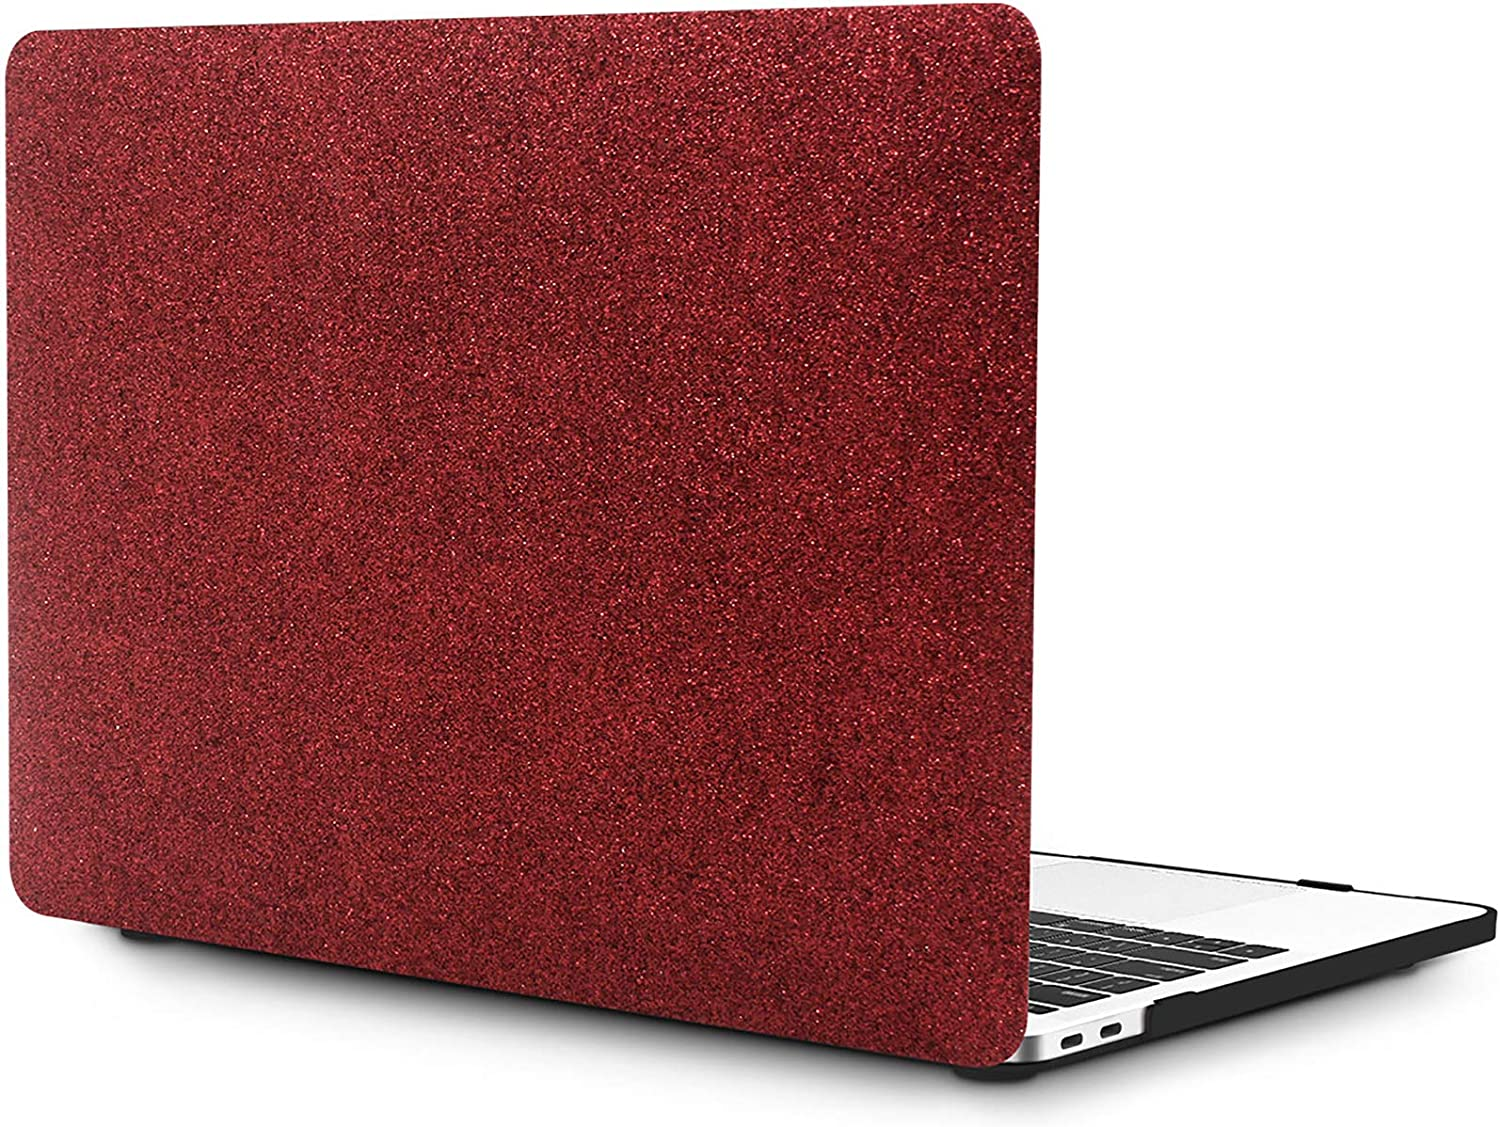 OneGET MacBook Pro 13 Gorgeous Inch Case with Laptop Bar Fashion Touch Max 59% OFF Ca